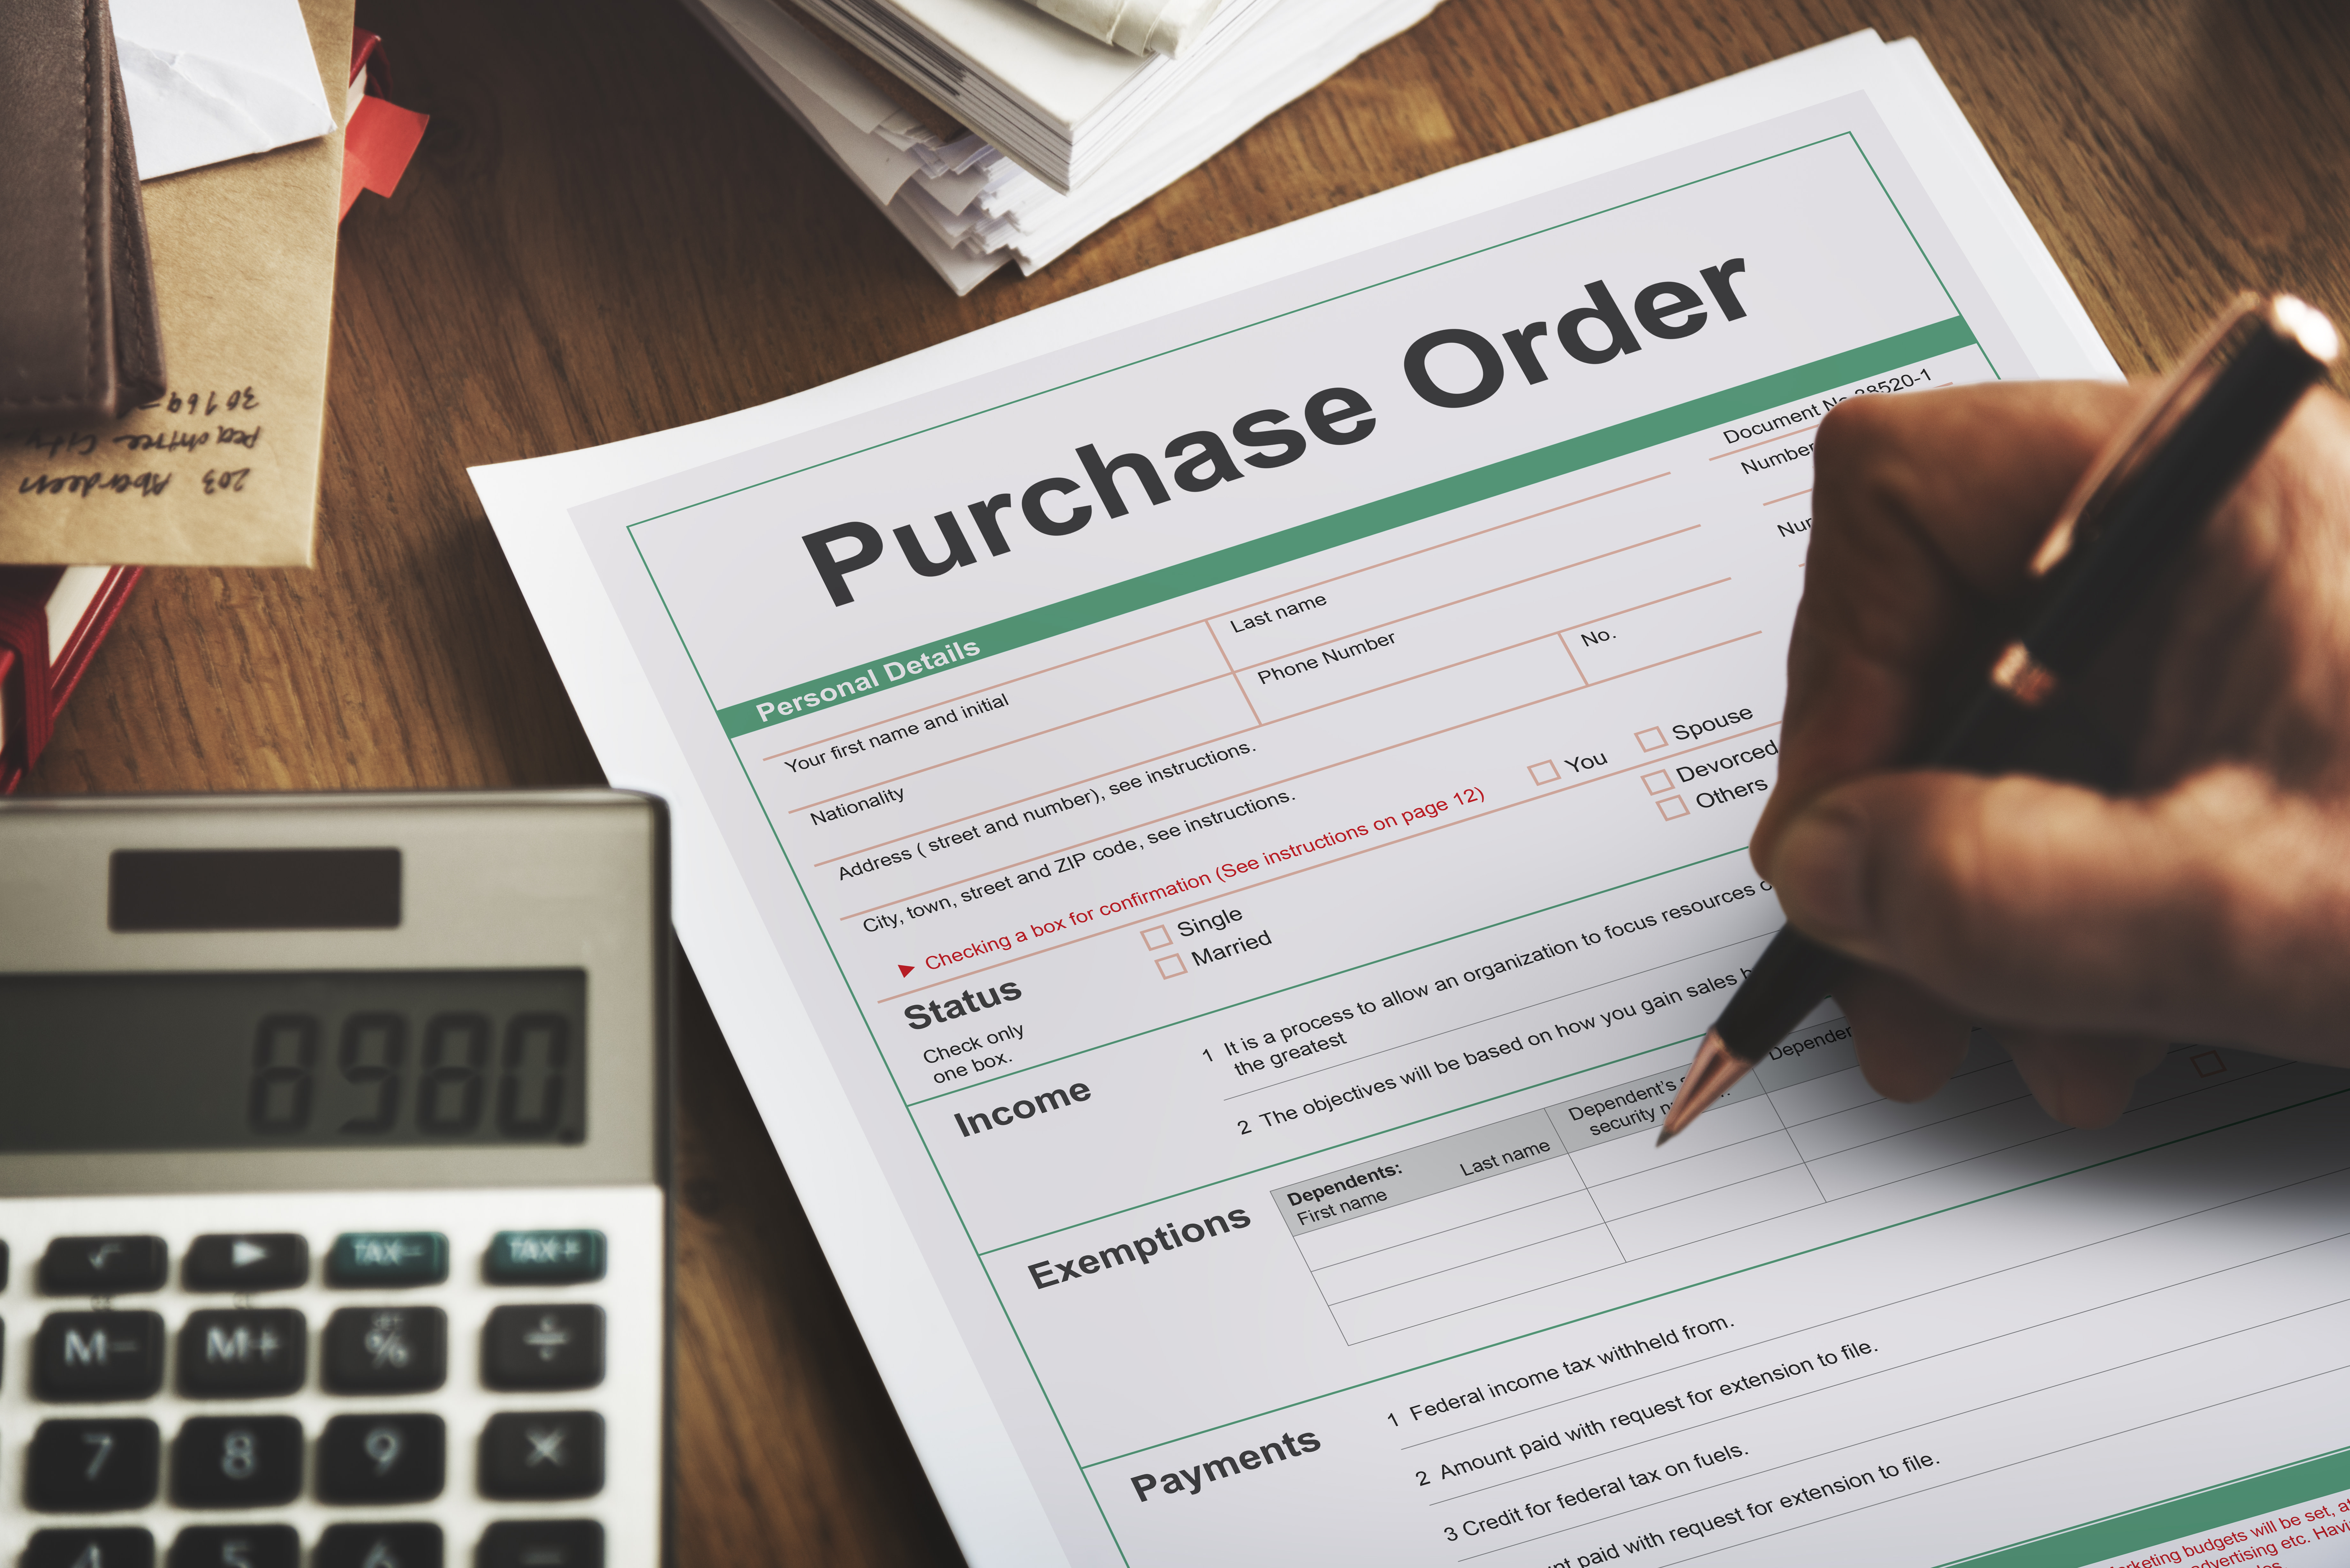 Purchase order on desk with person holding pen